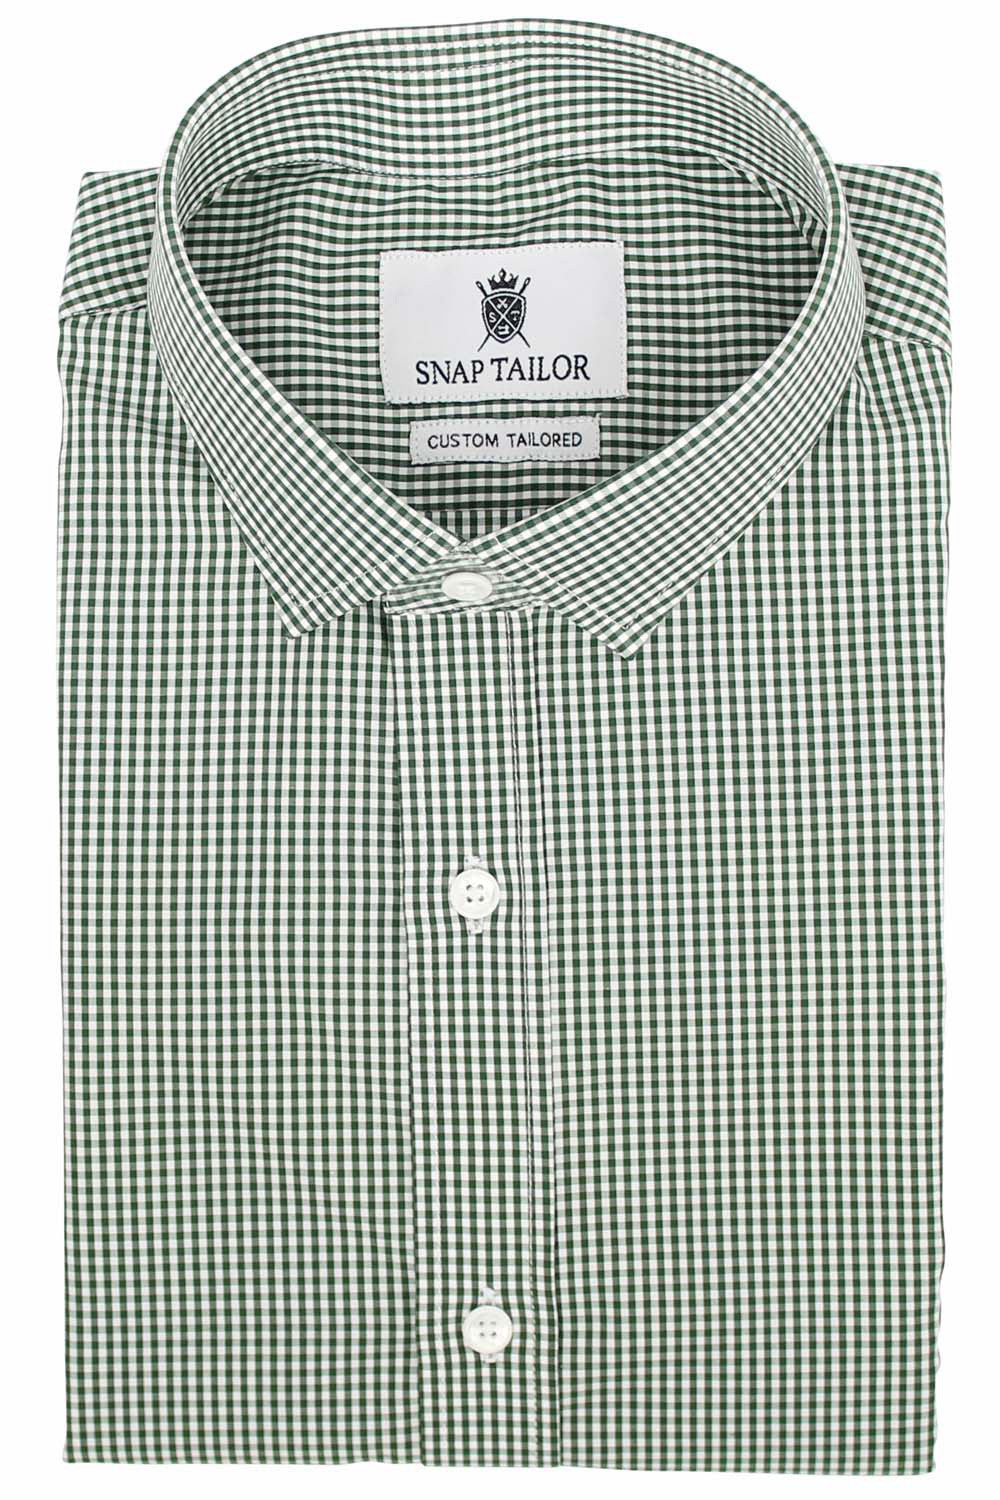 Photo of the Mini Gingham Dress Shirt in Green